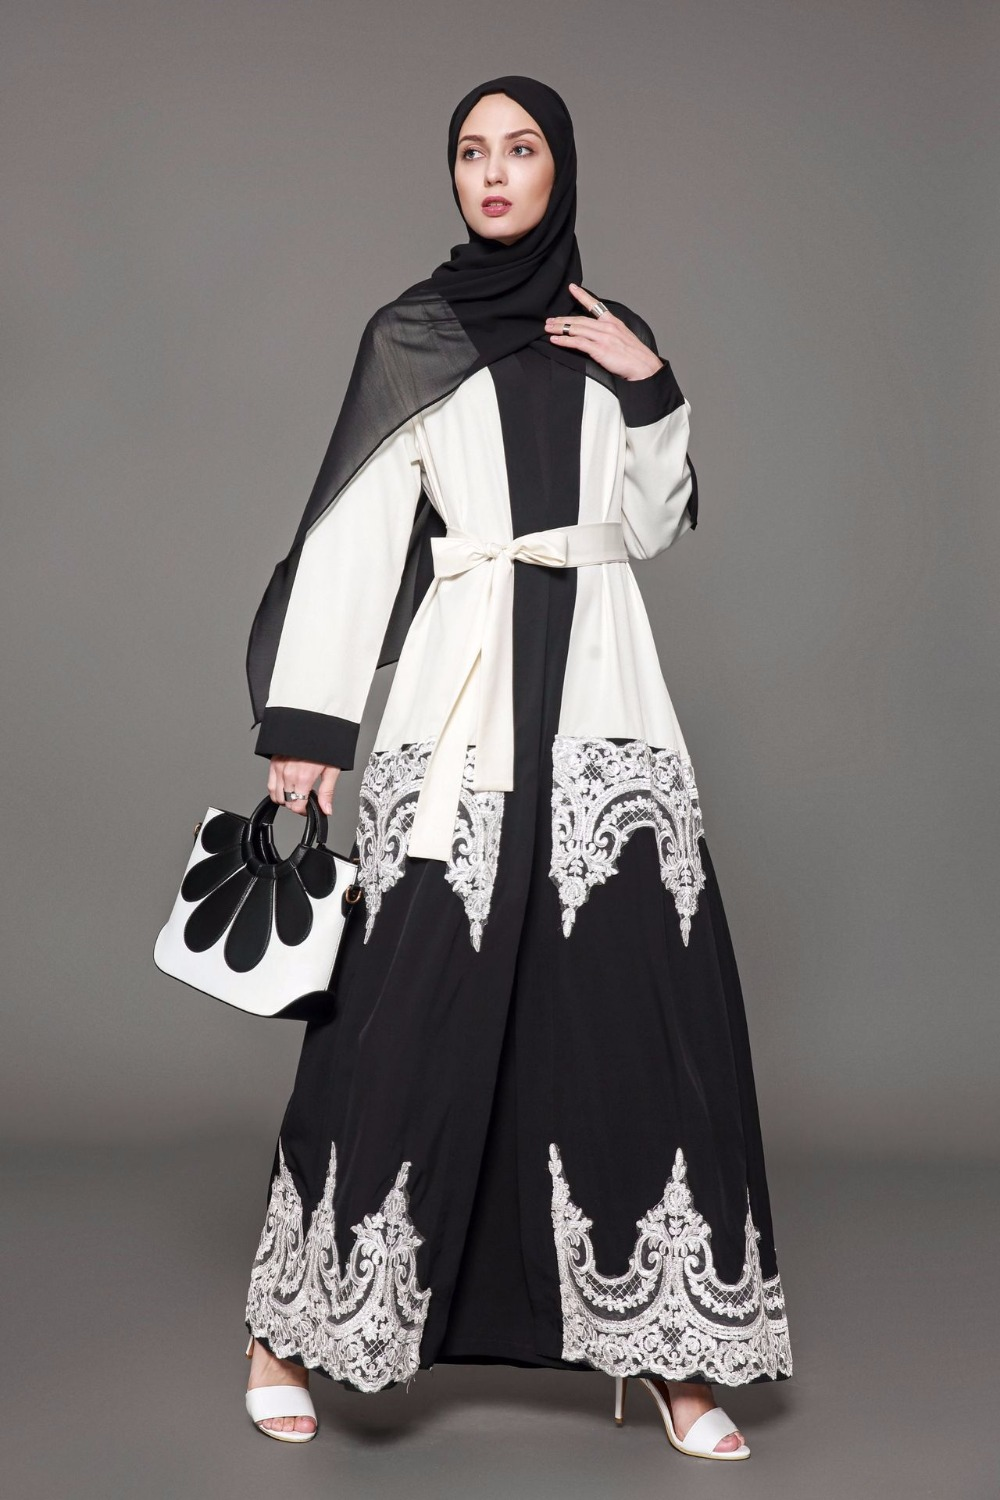 muslim abaya islamic dress arab dresses plus dubai clothing elegant eid arabic kaftan saudi 5xl robe outfits hijab outfit islam